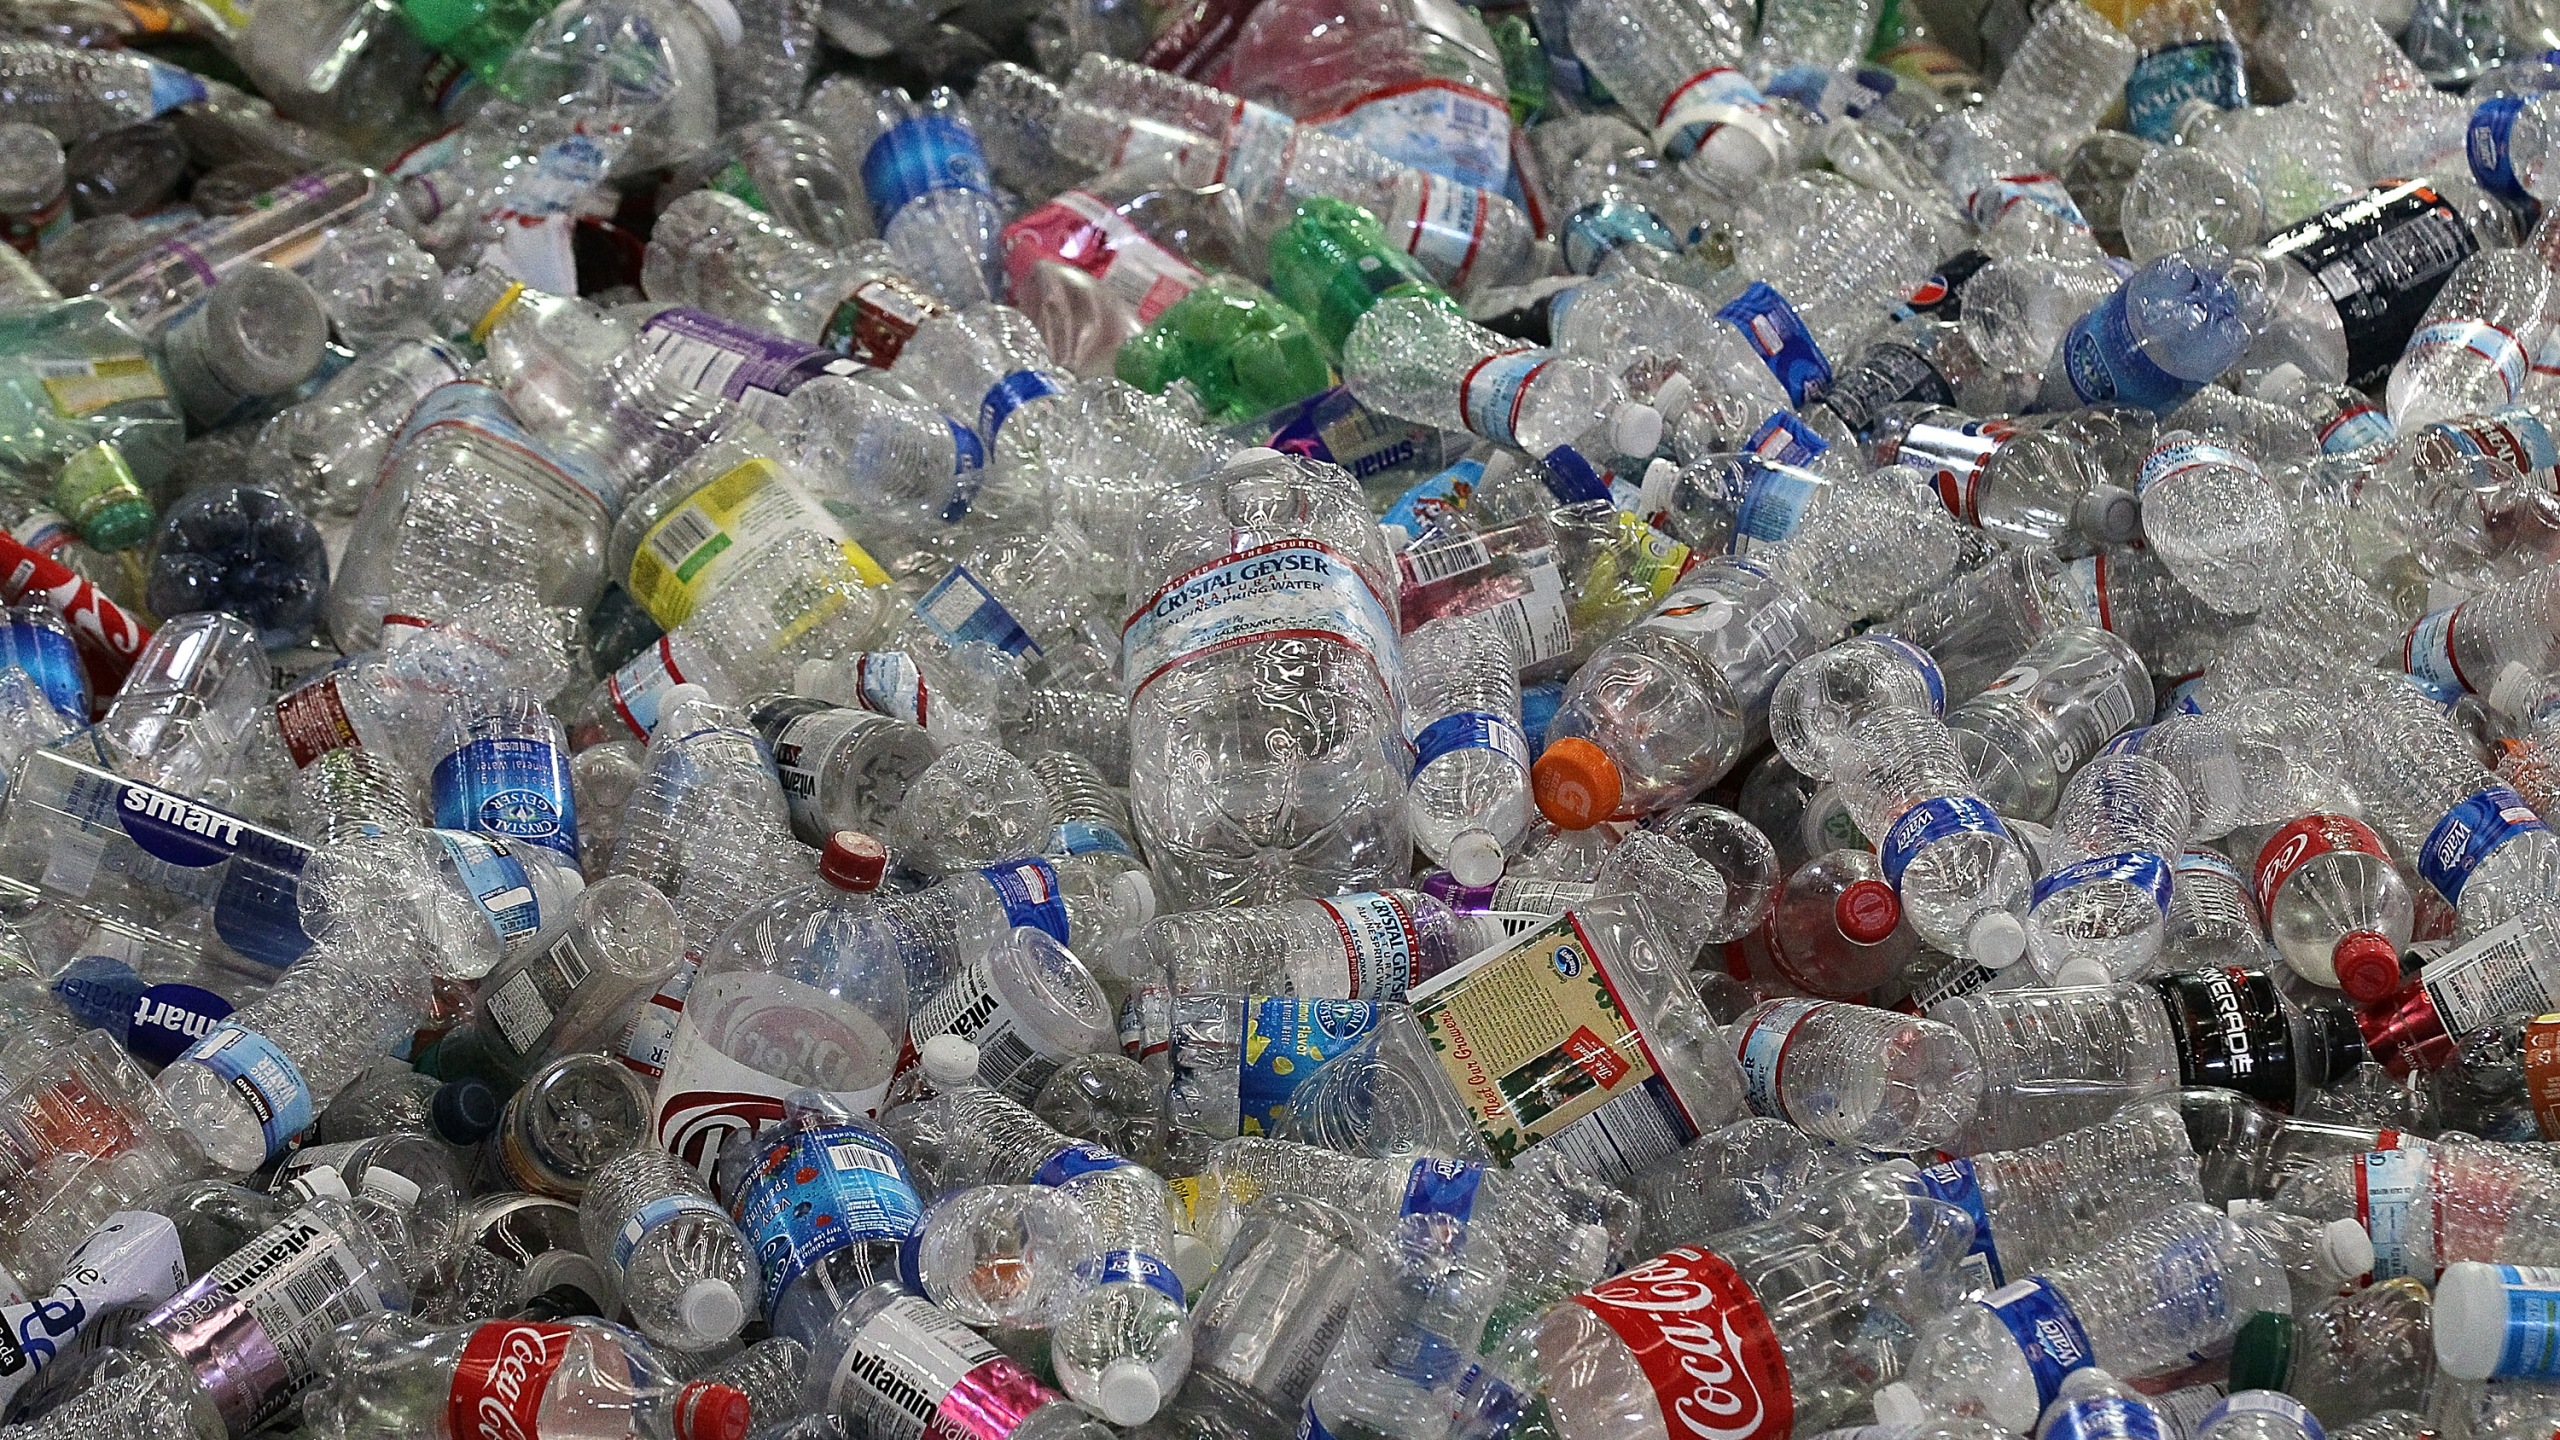 Hundreds of recycled plastic water bottles are piled up inside the Recology recycling facility on March 15, 2011, in San Francisco, California.(Credit: Justin Sullivan/Getty Images)